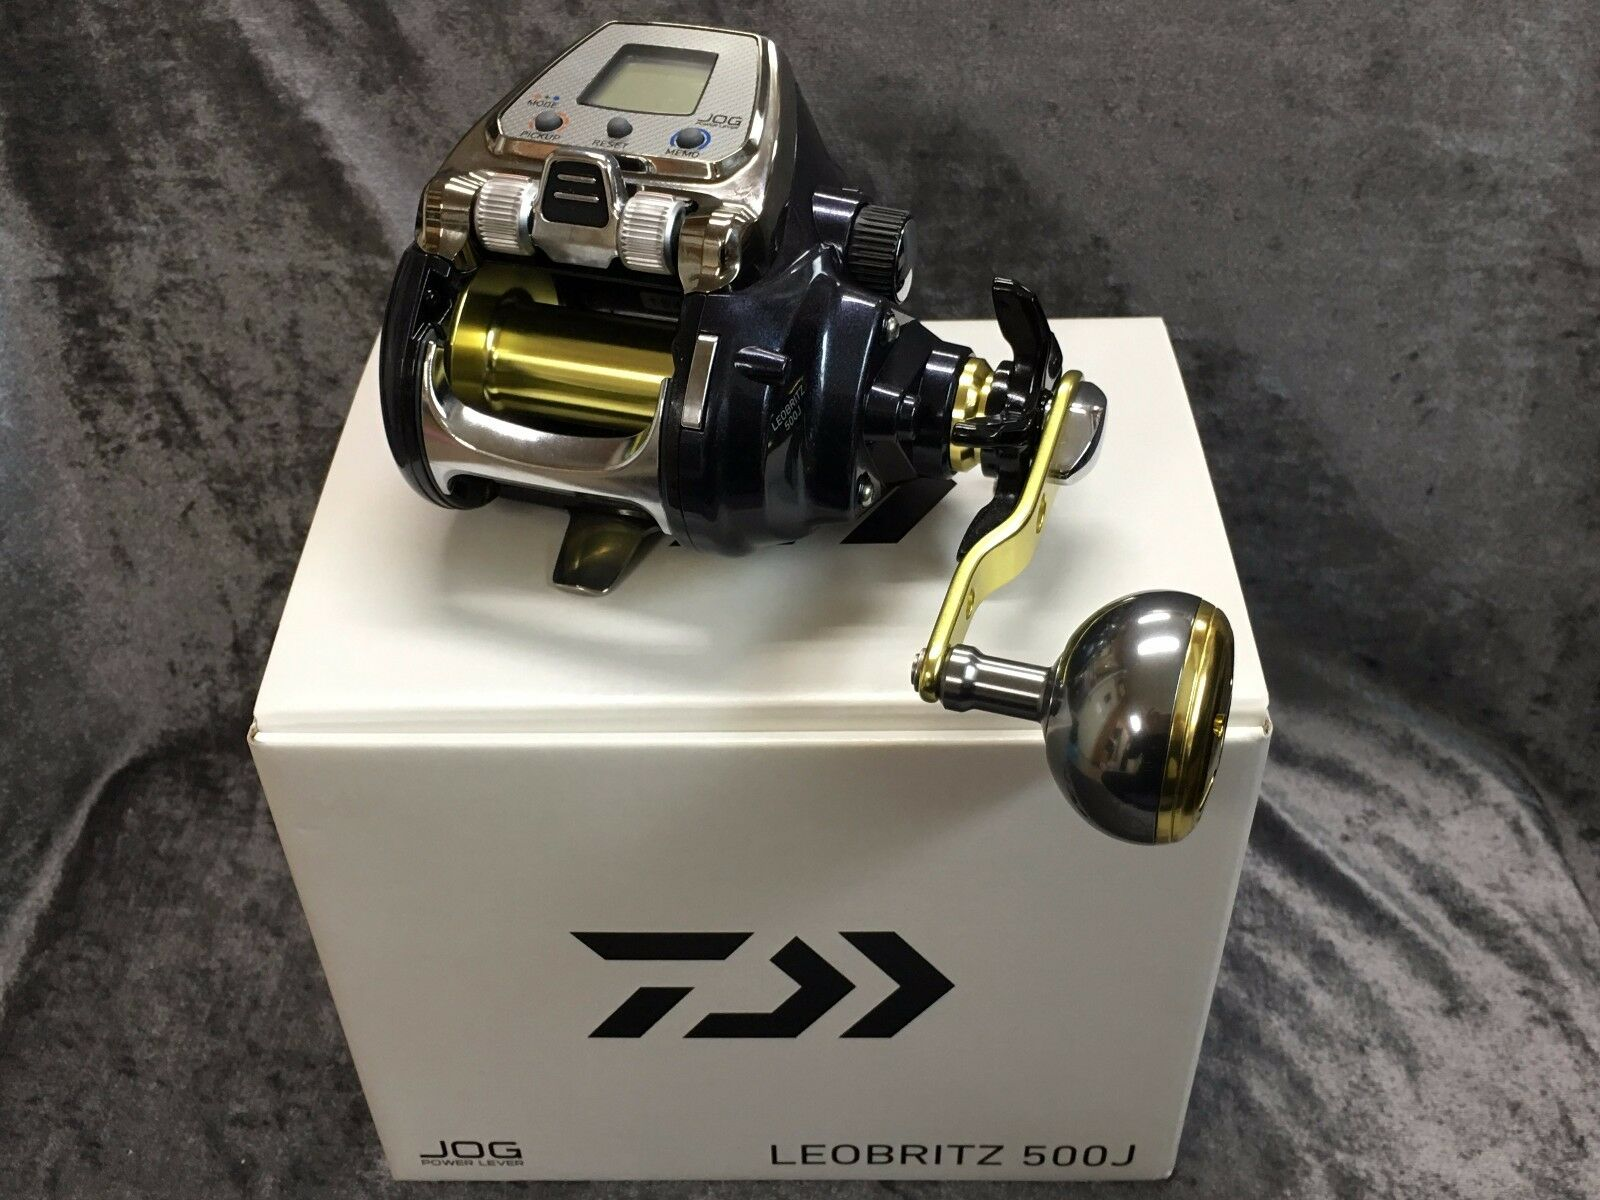 s l1600 electric fishing reel ebay  at soozxer.org